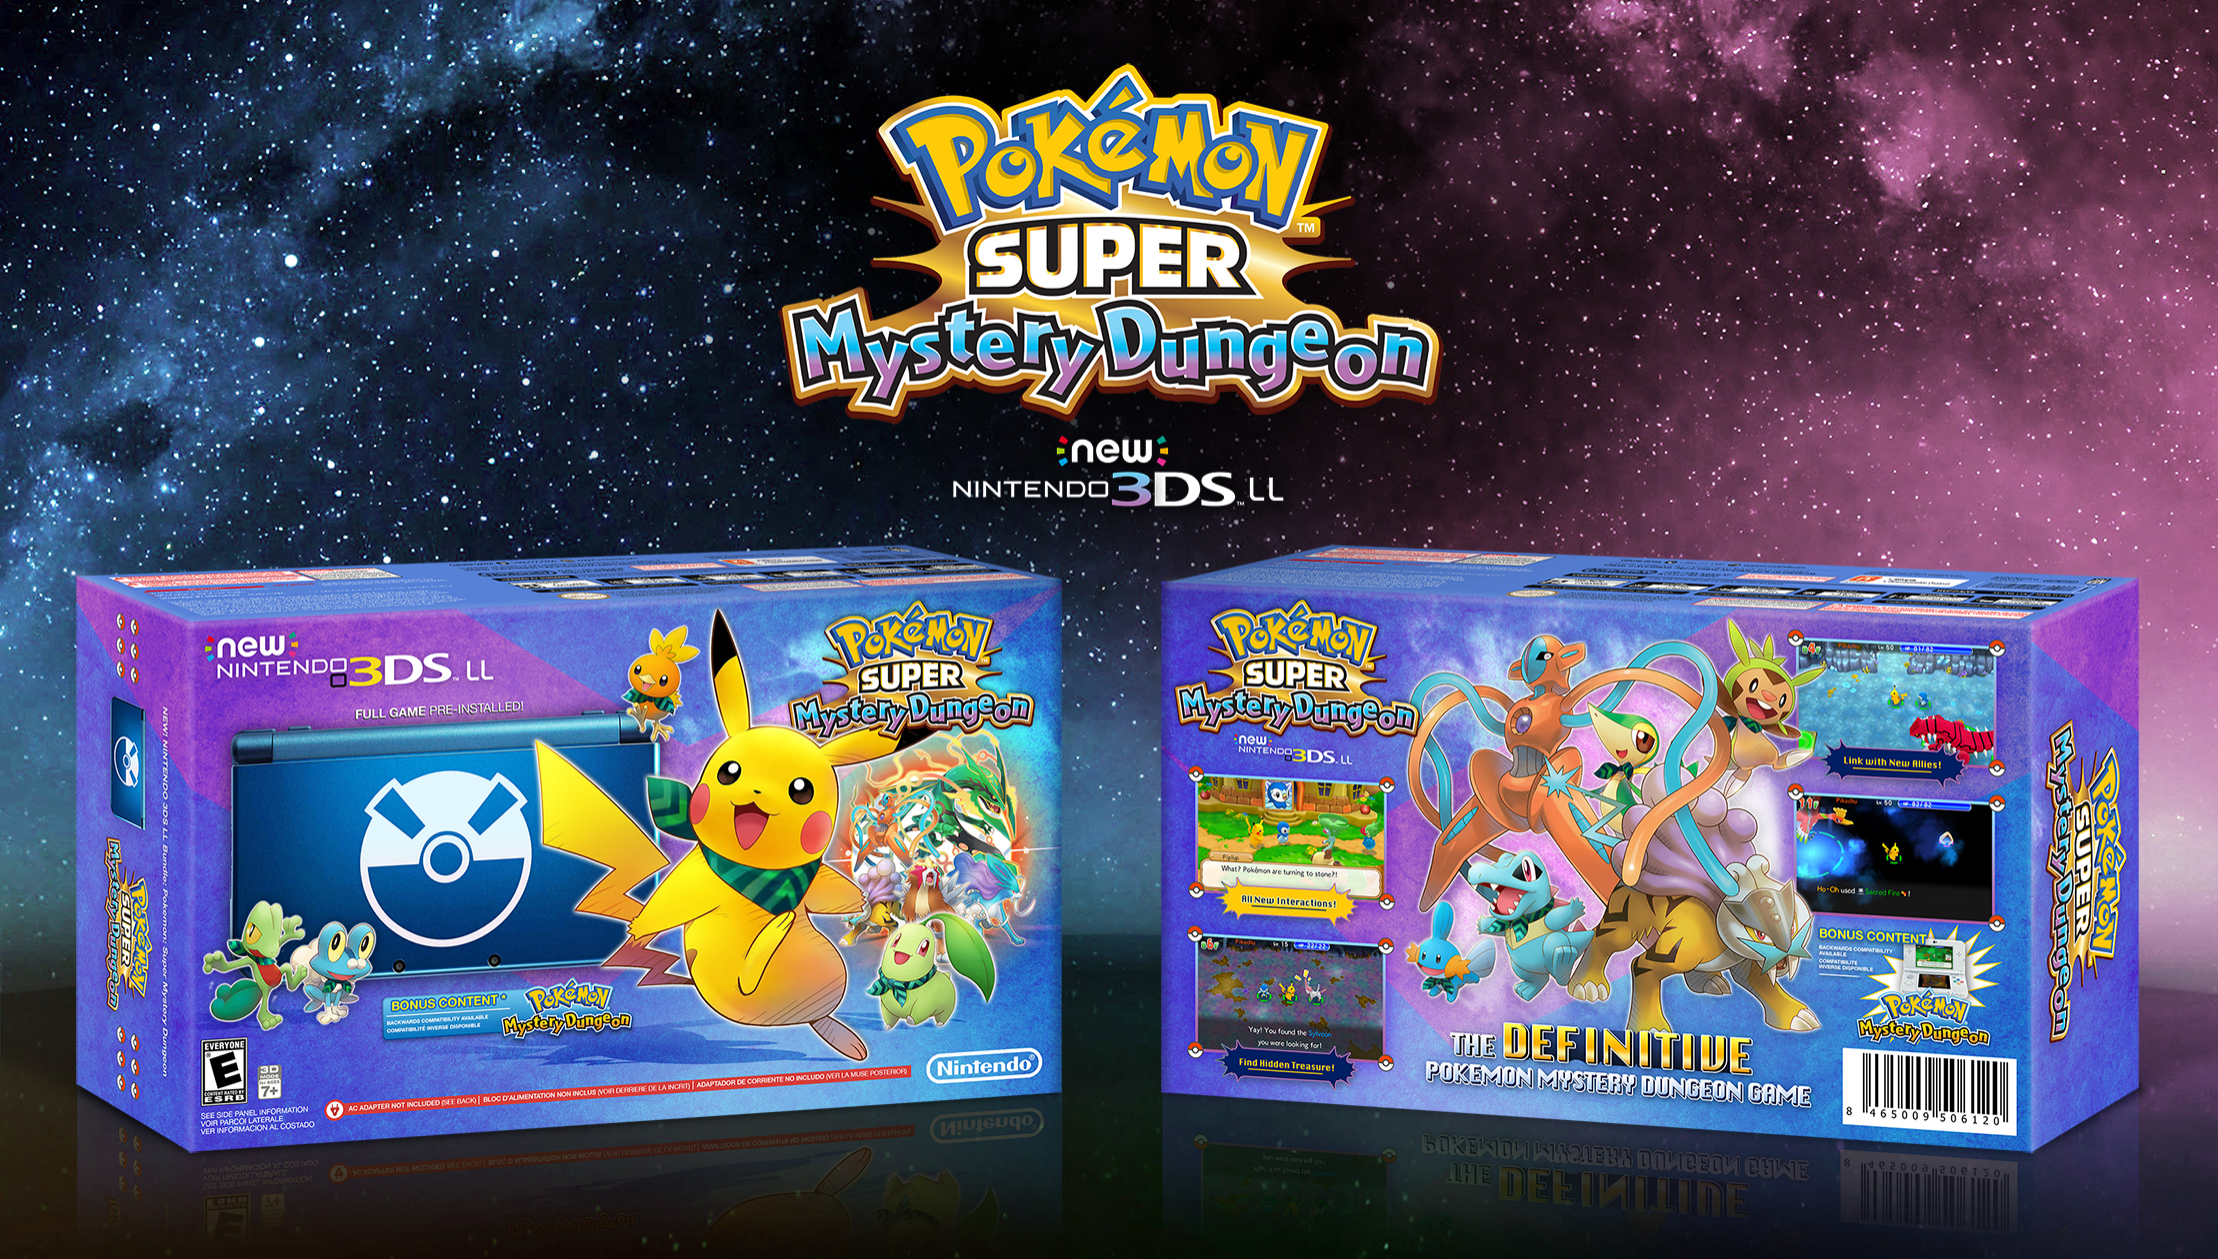 Viewing Full Size Pokemon Super Mystery Dungeon Bundle Box Cover